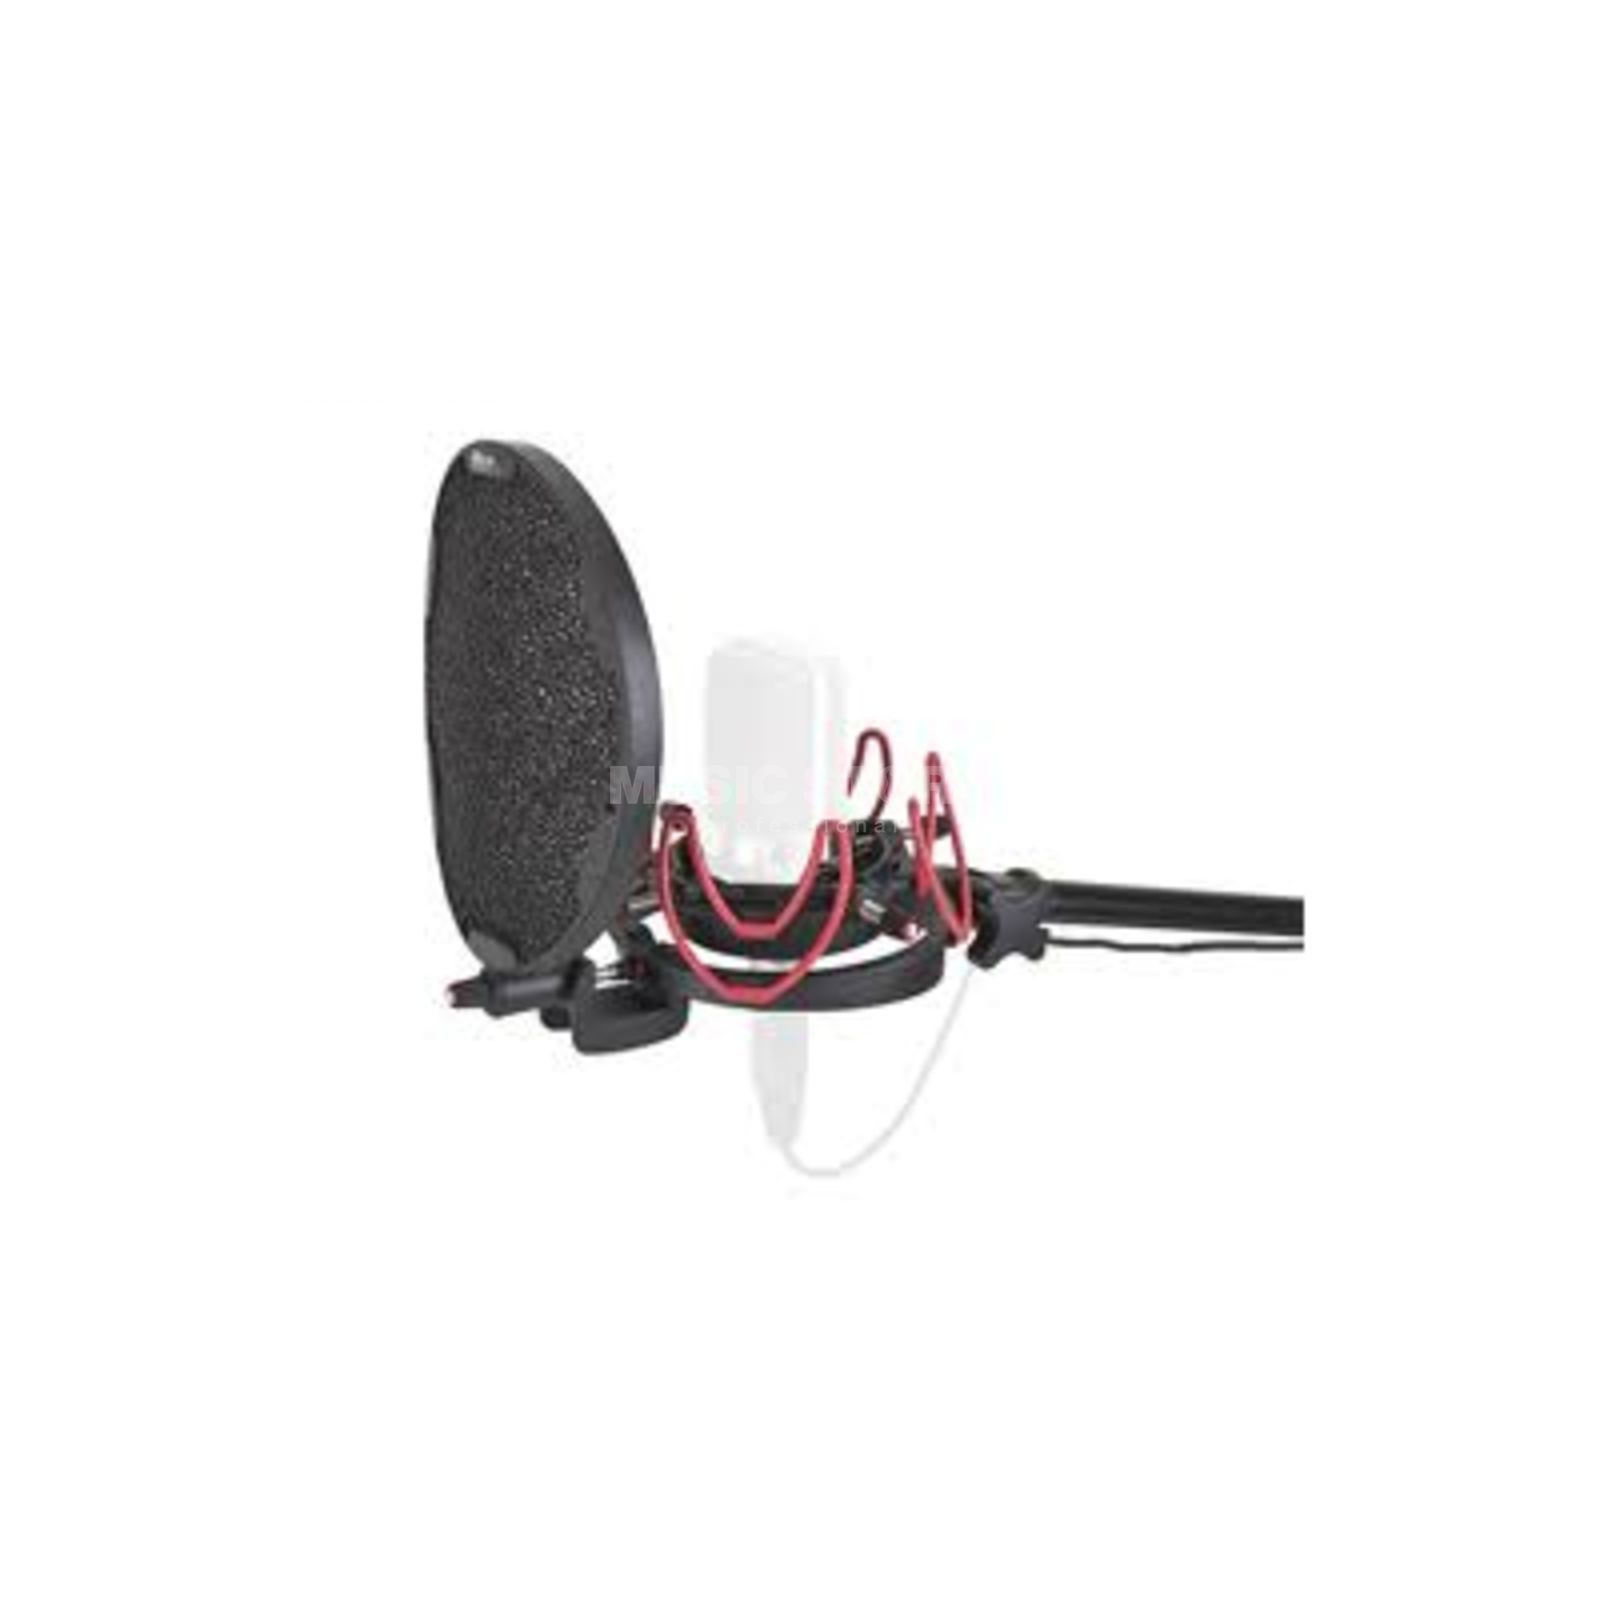 Rycote InVision Studio Kit, USM    Product Image